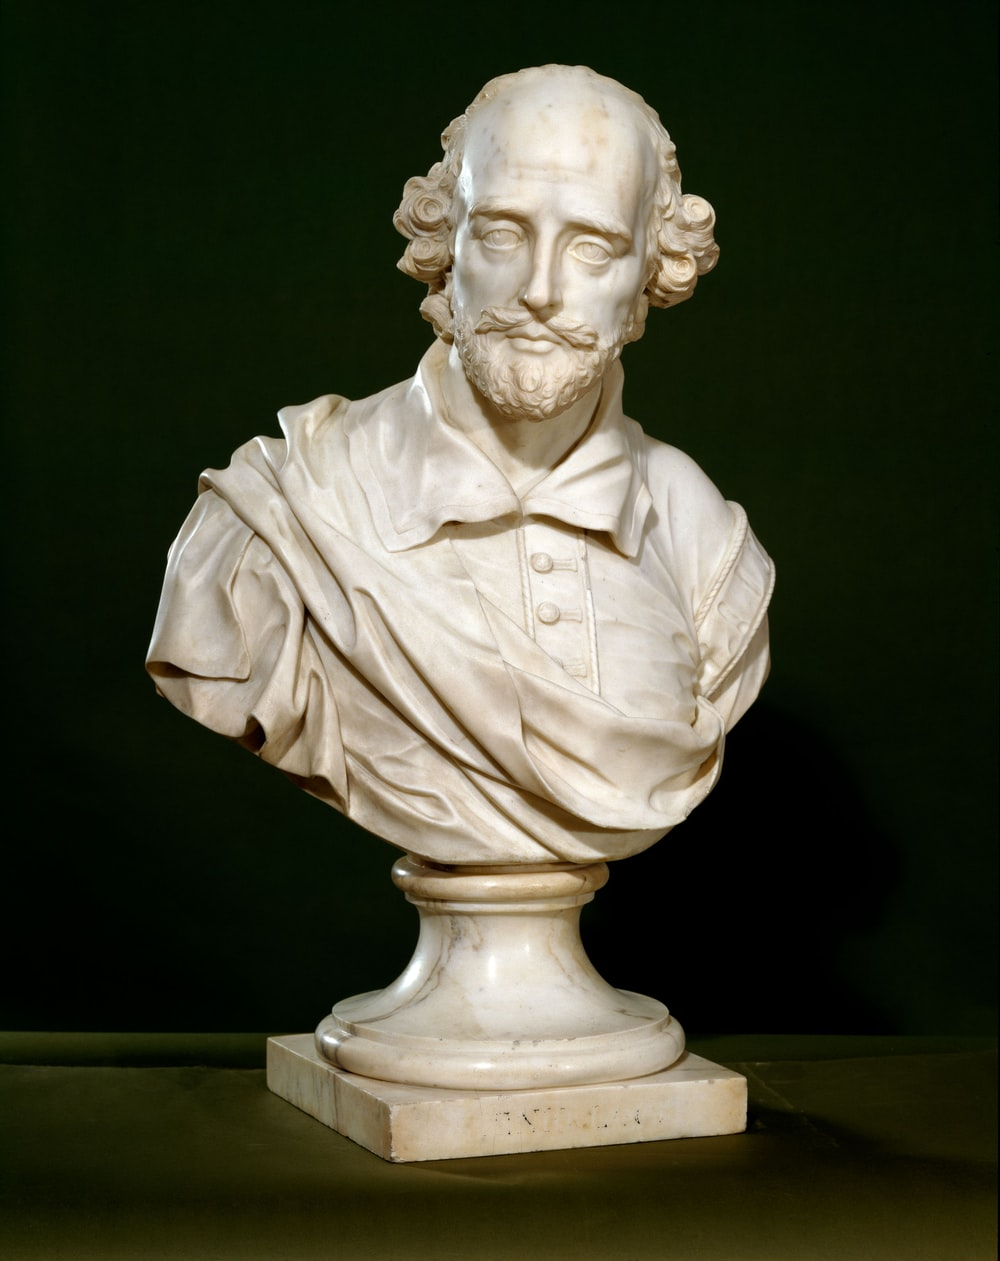 The Greatest English playwright William Shakespeare